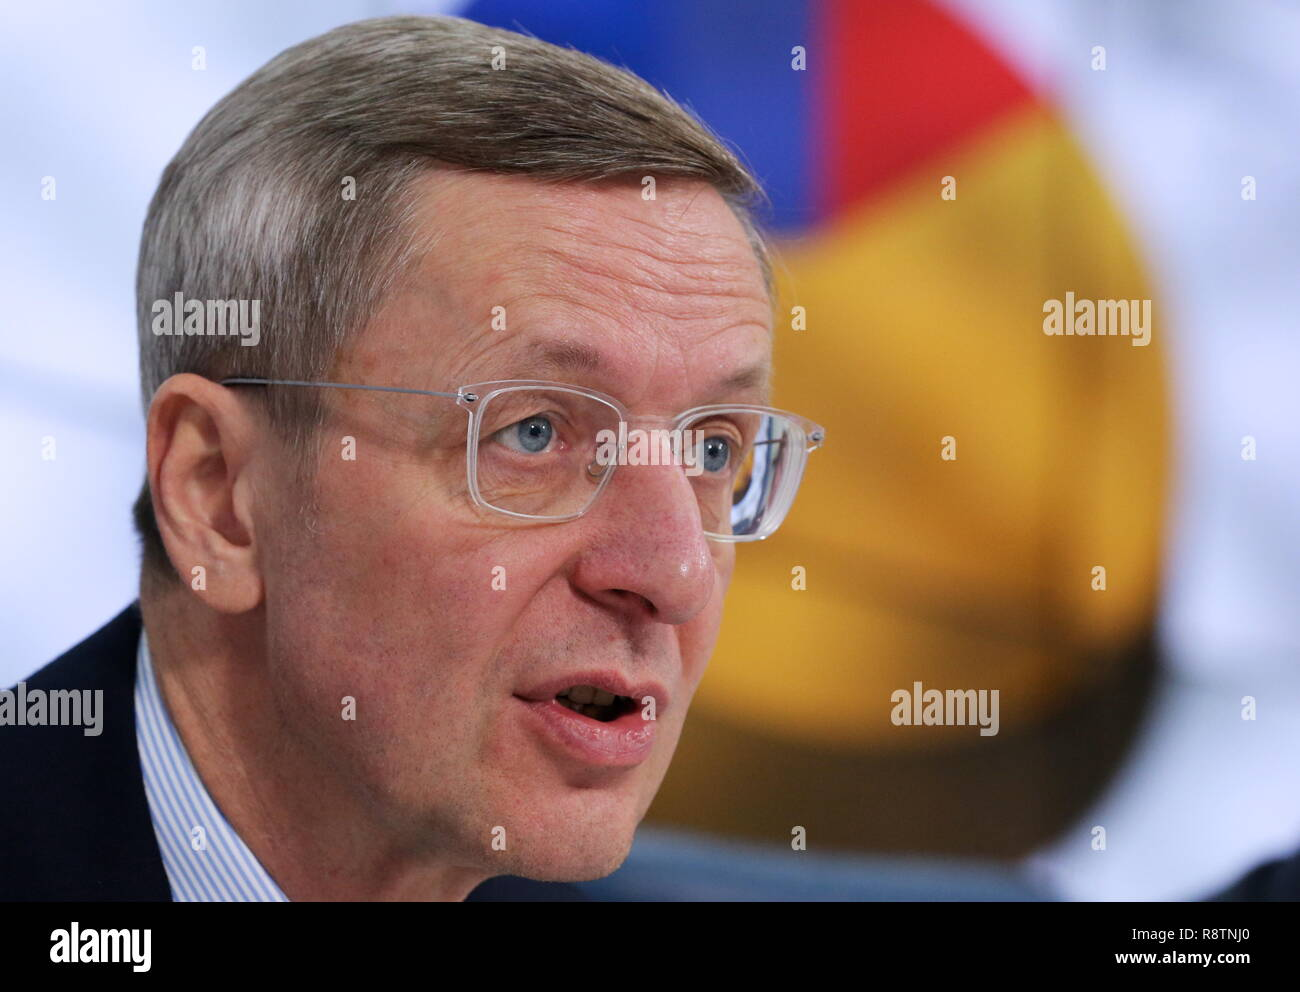 Moscow, Russia. 18th Dec, 2018. MOSCOW, RUSSIA - DECEMBER 18, 2018: The Executive Director of the German Committee on Eastern European Economic Relations, Michael Harms at a press conference on developing German business in Russia in 2019. Vladimir Gerdo/TASS Credit: ITAR-TASS News Agency/Alamy Live News - Stock Image